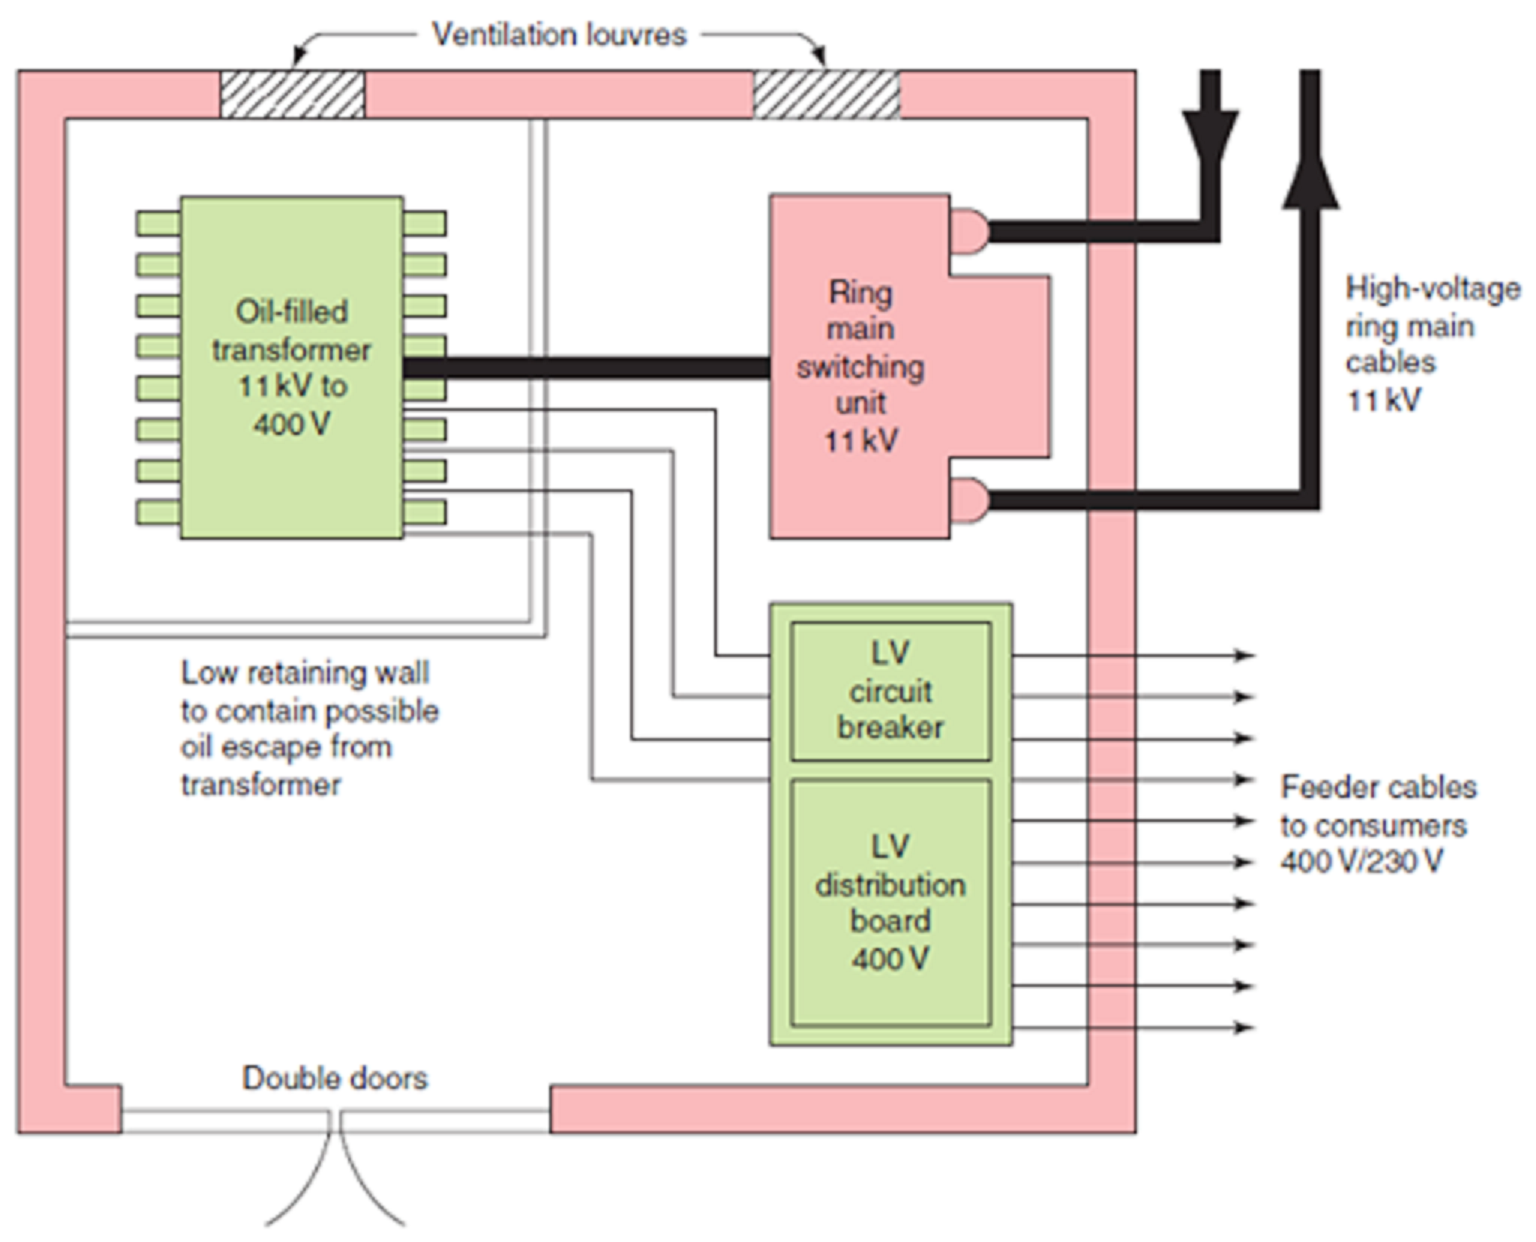 wiring diagram for electric substation wiring diagram blog wiring diagram for electric substation [ 1536 x 1242 Pixel ]